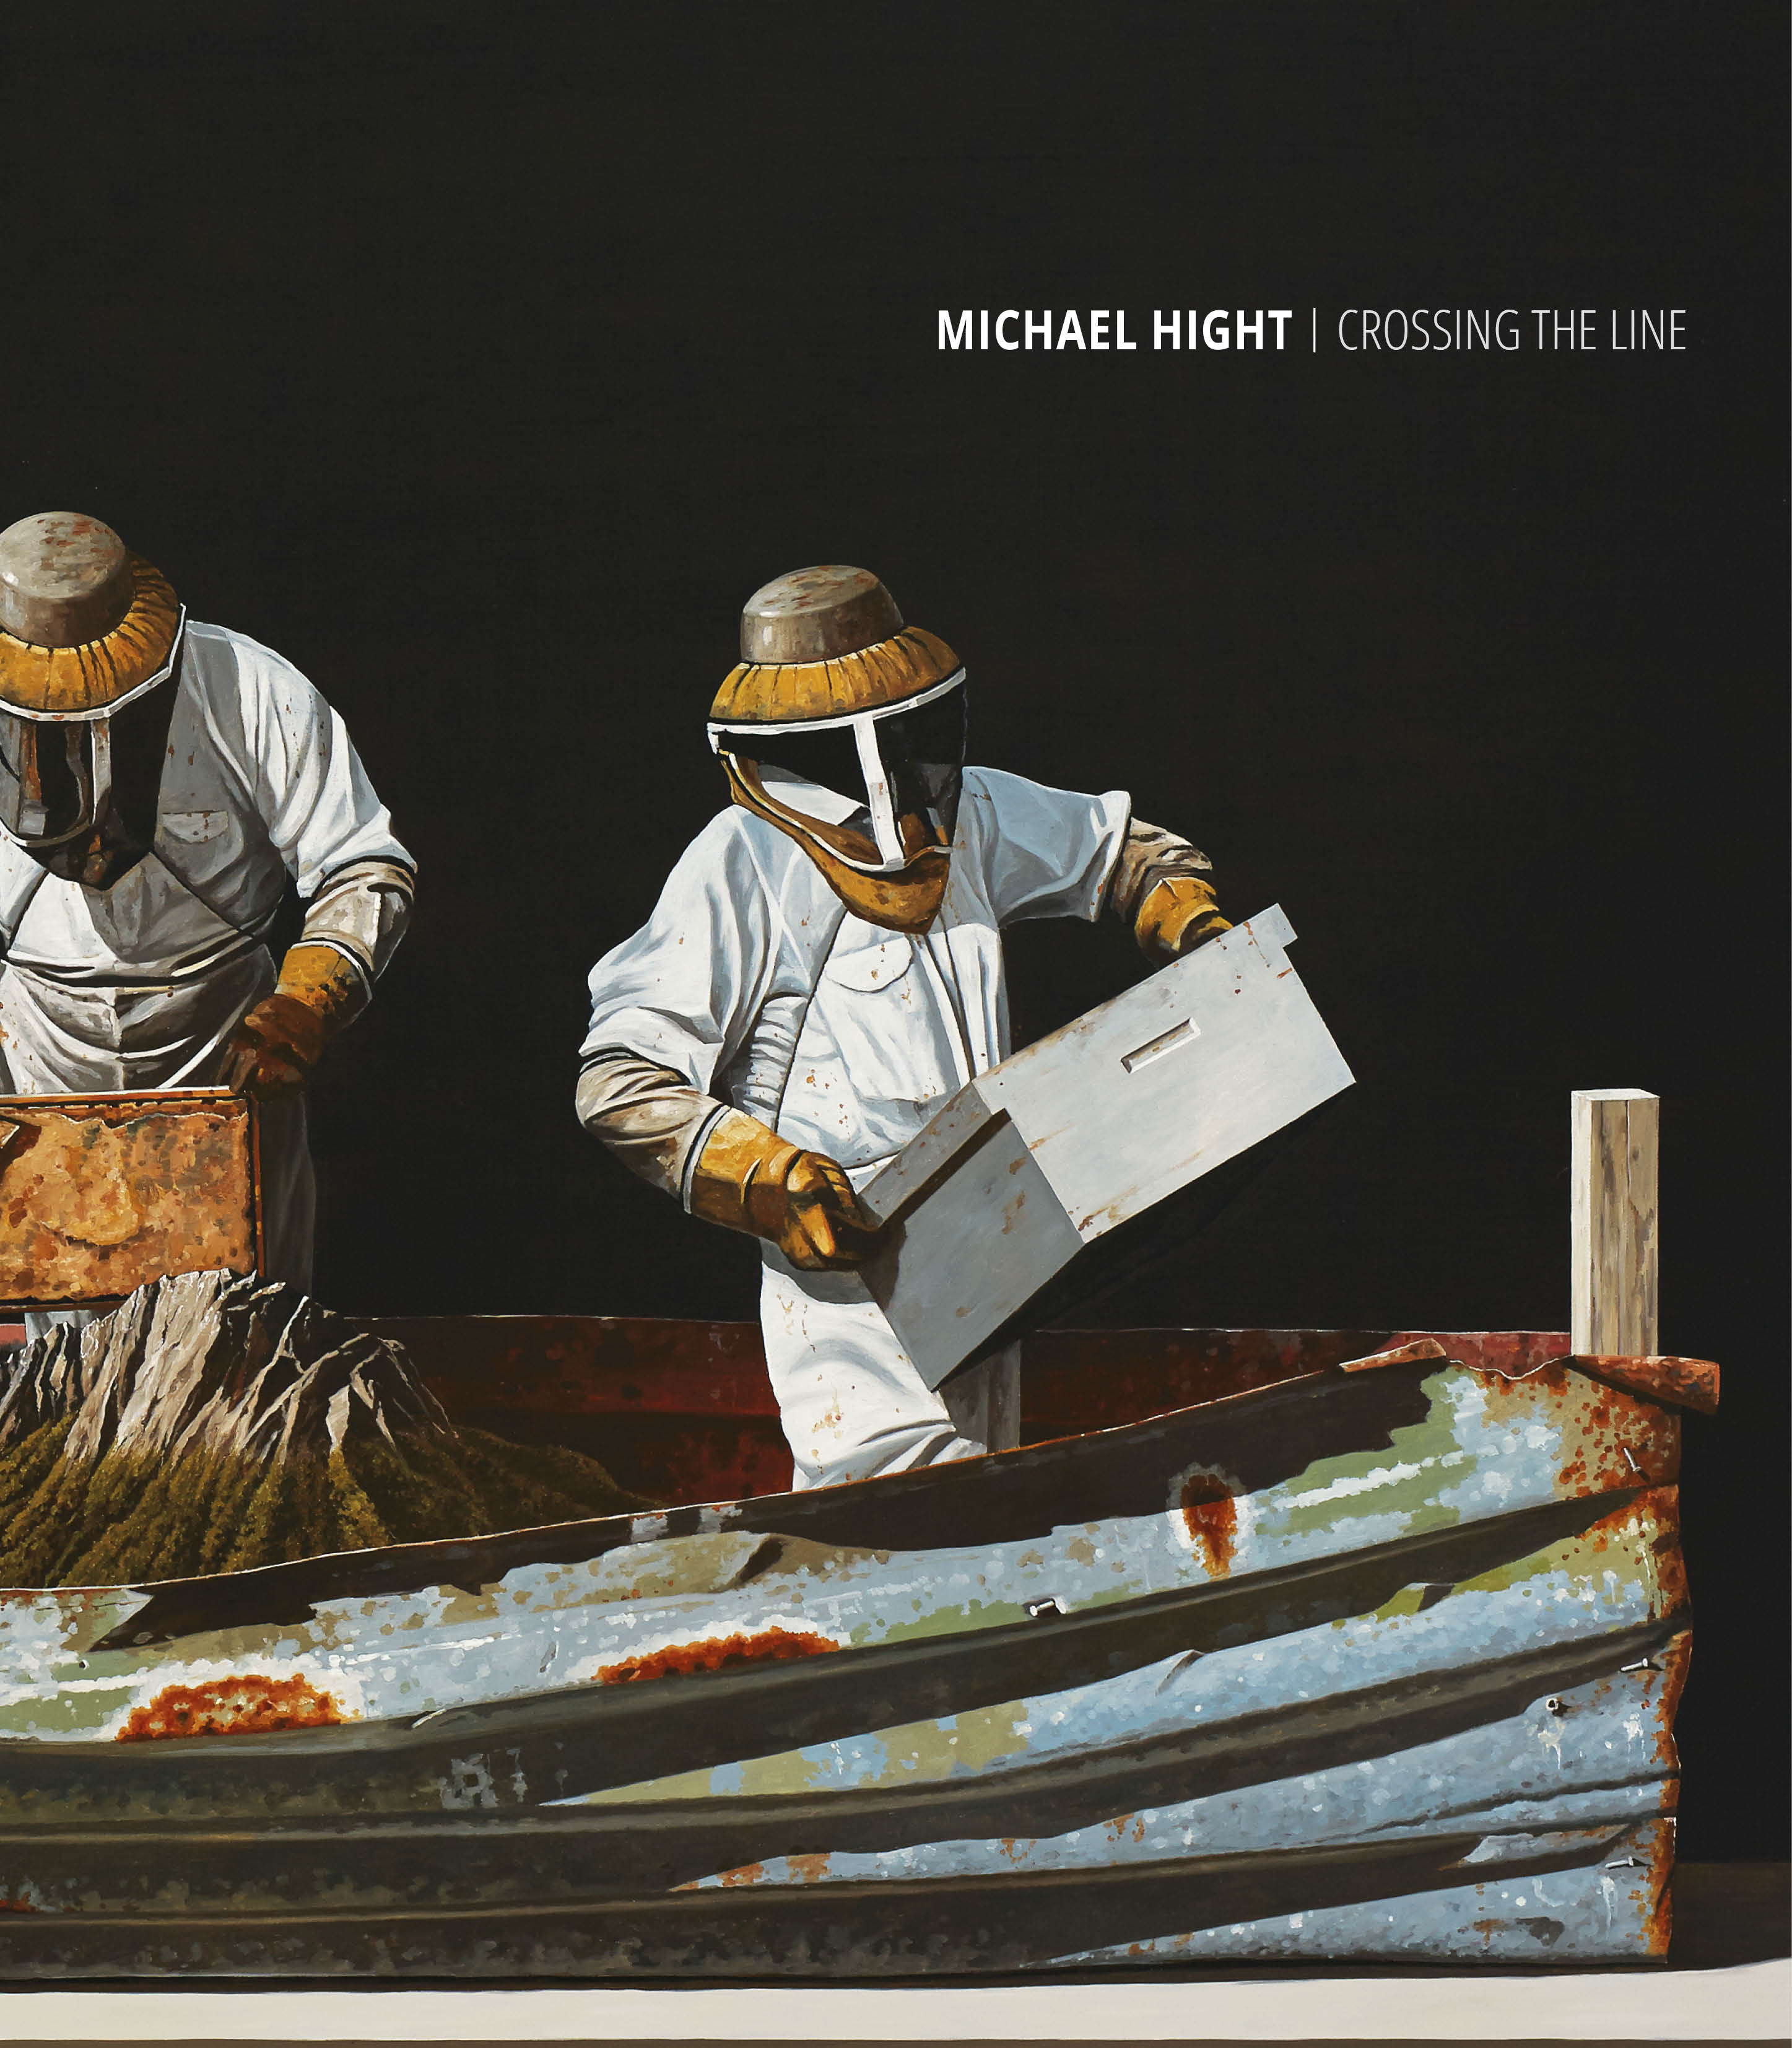 Michael Hight book launch